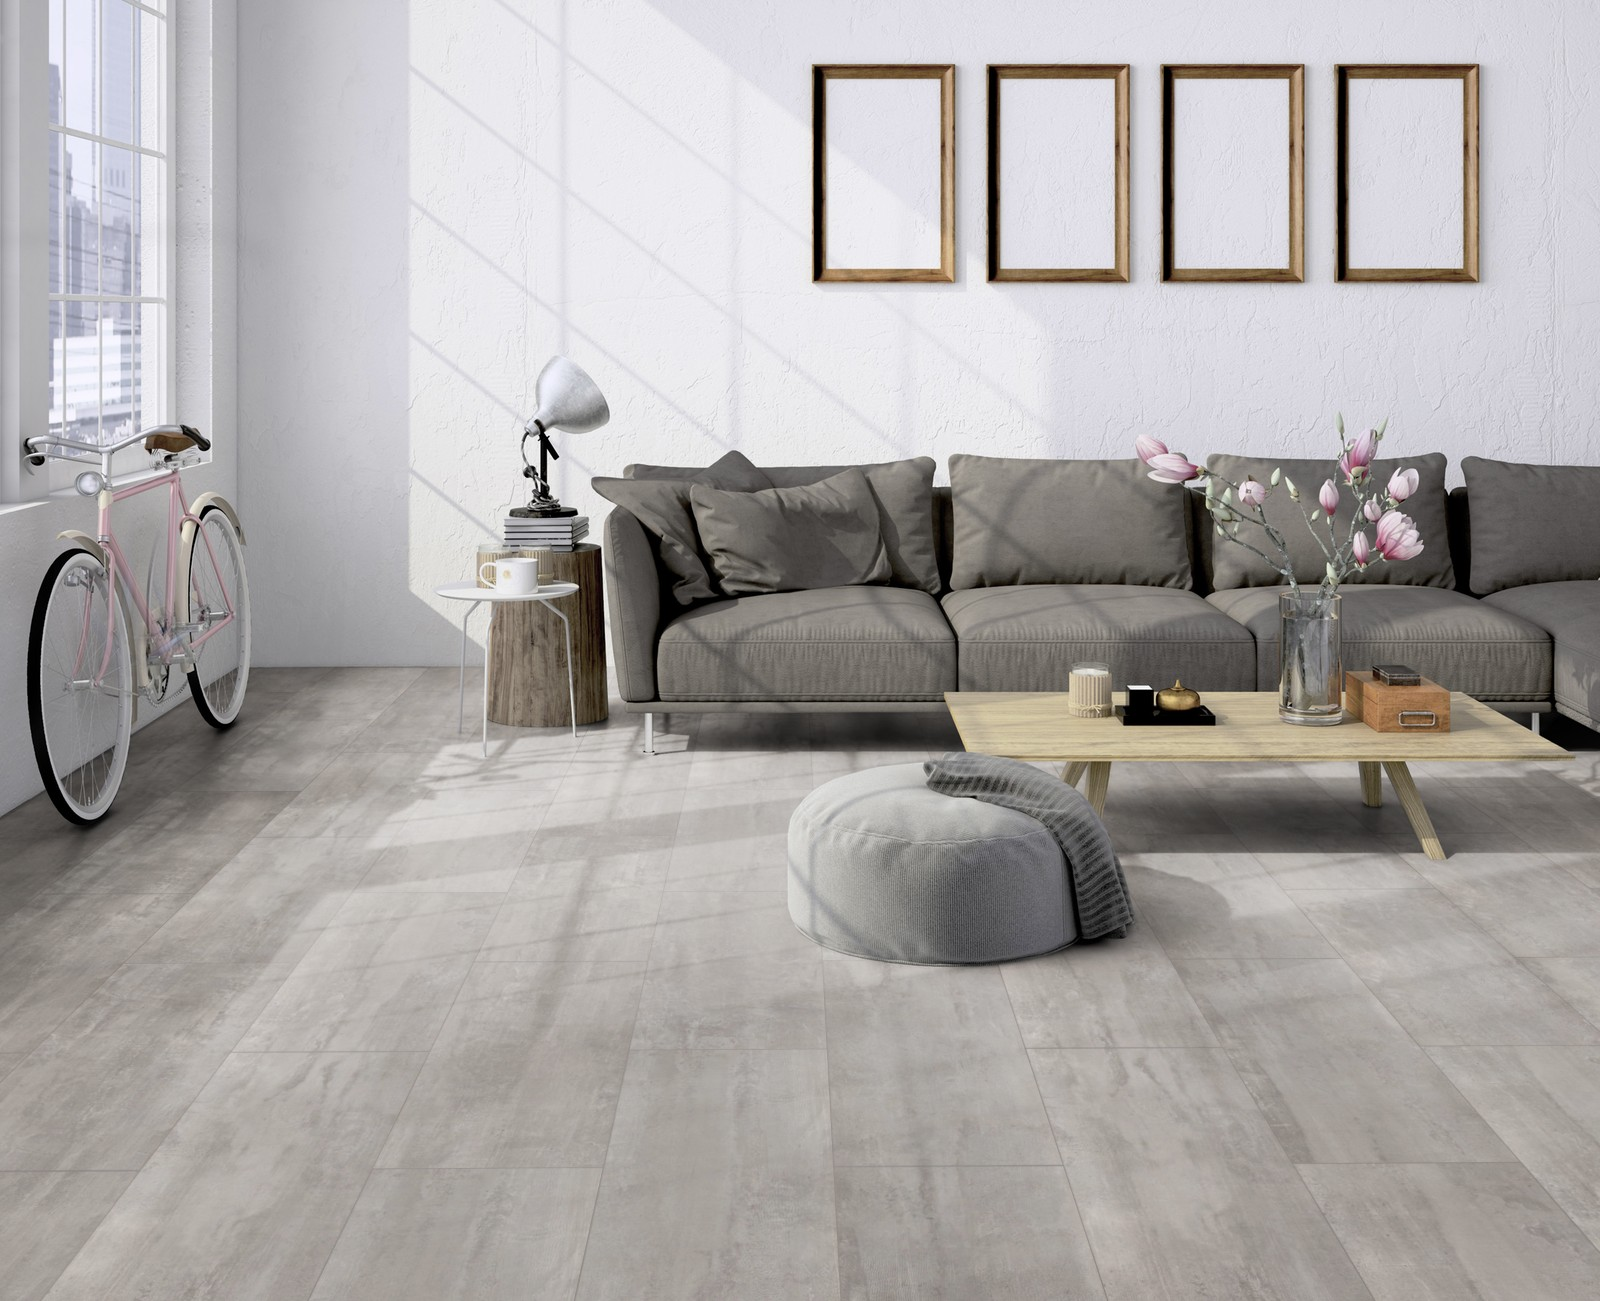 Le05 ter hürne cement look light grey laminate tile living room